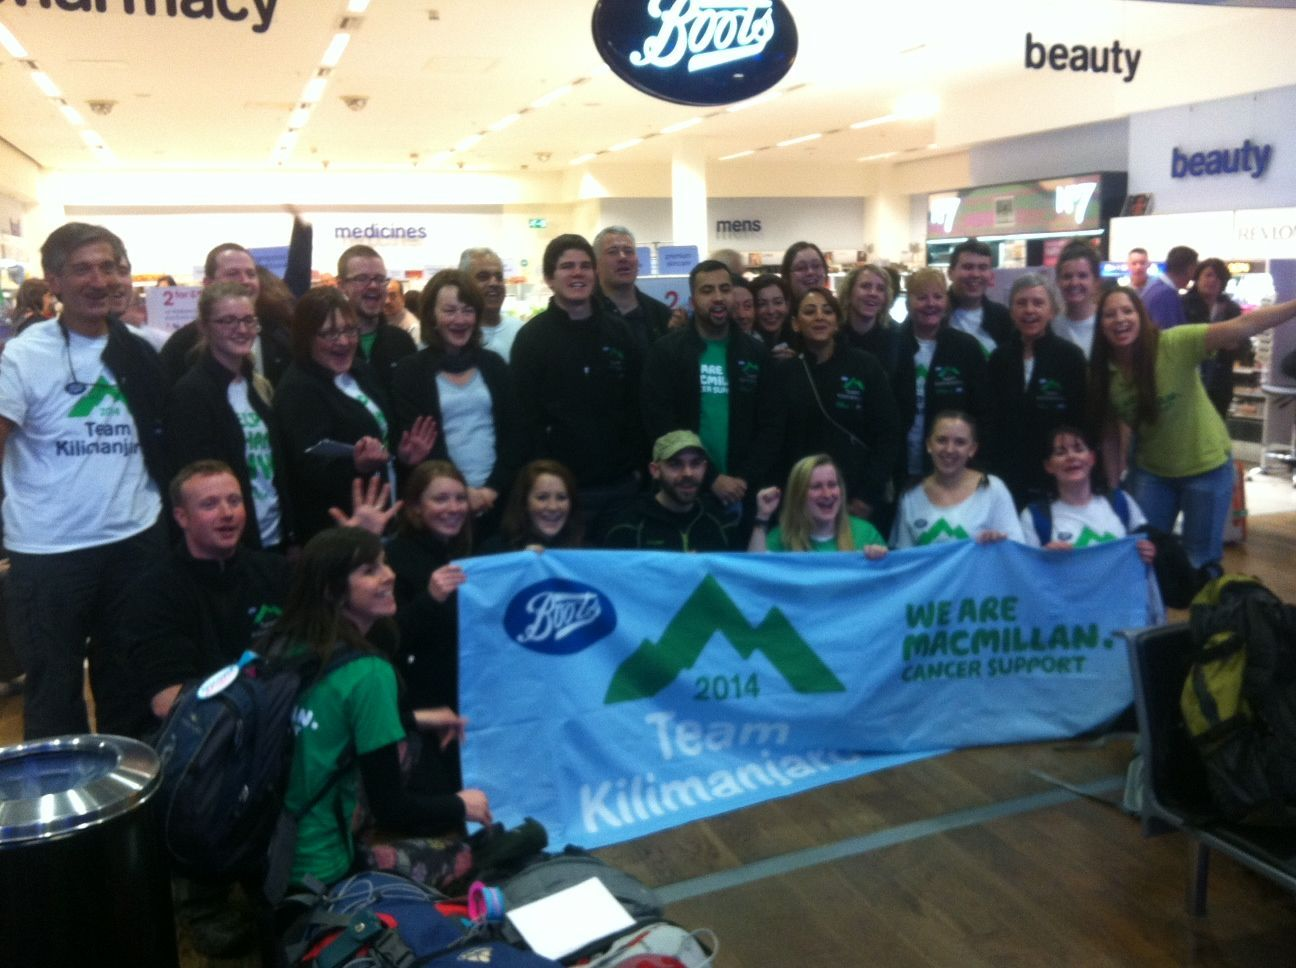 Boots for Macmillan